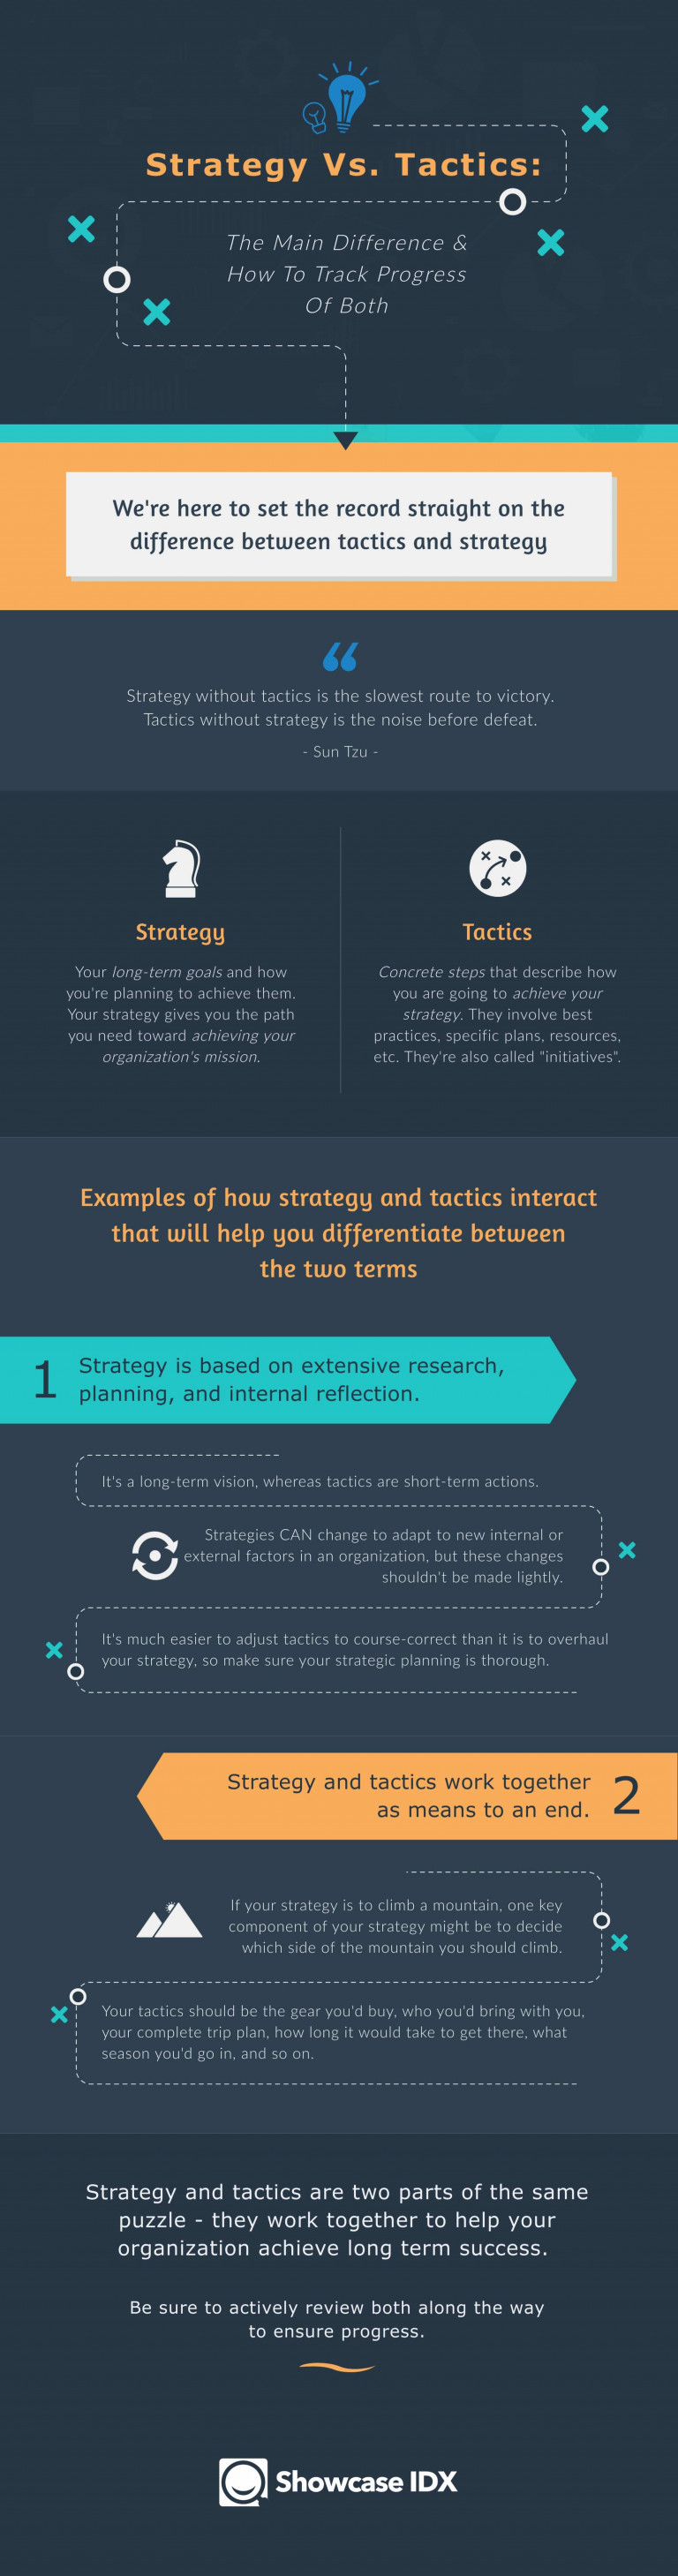 Infographic-Strategy-Vs-Tactics